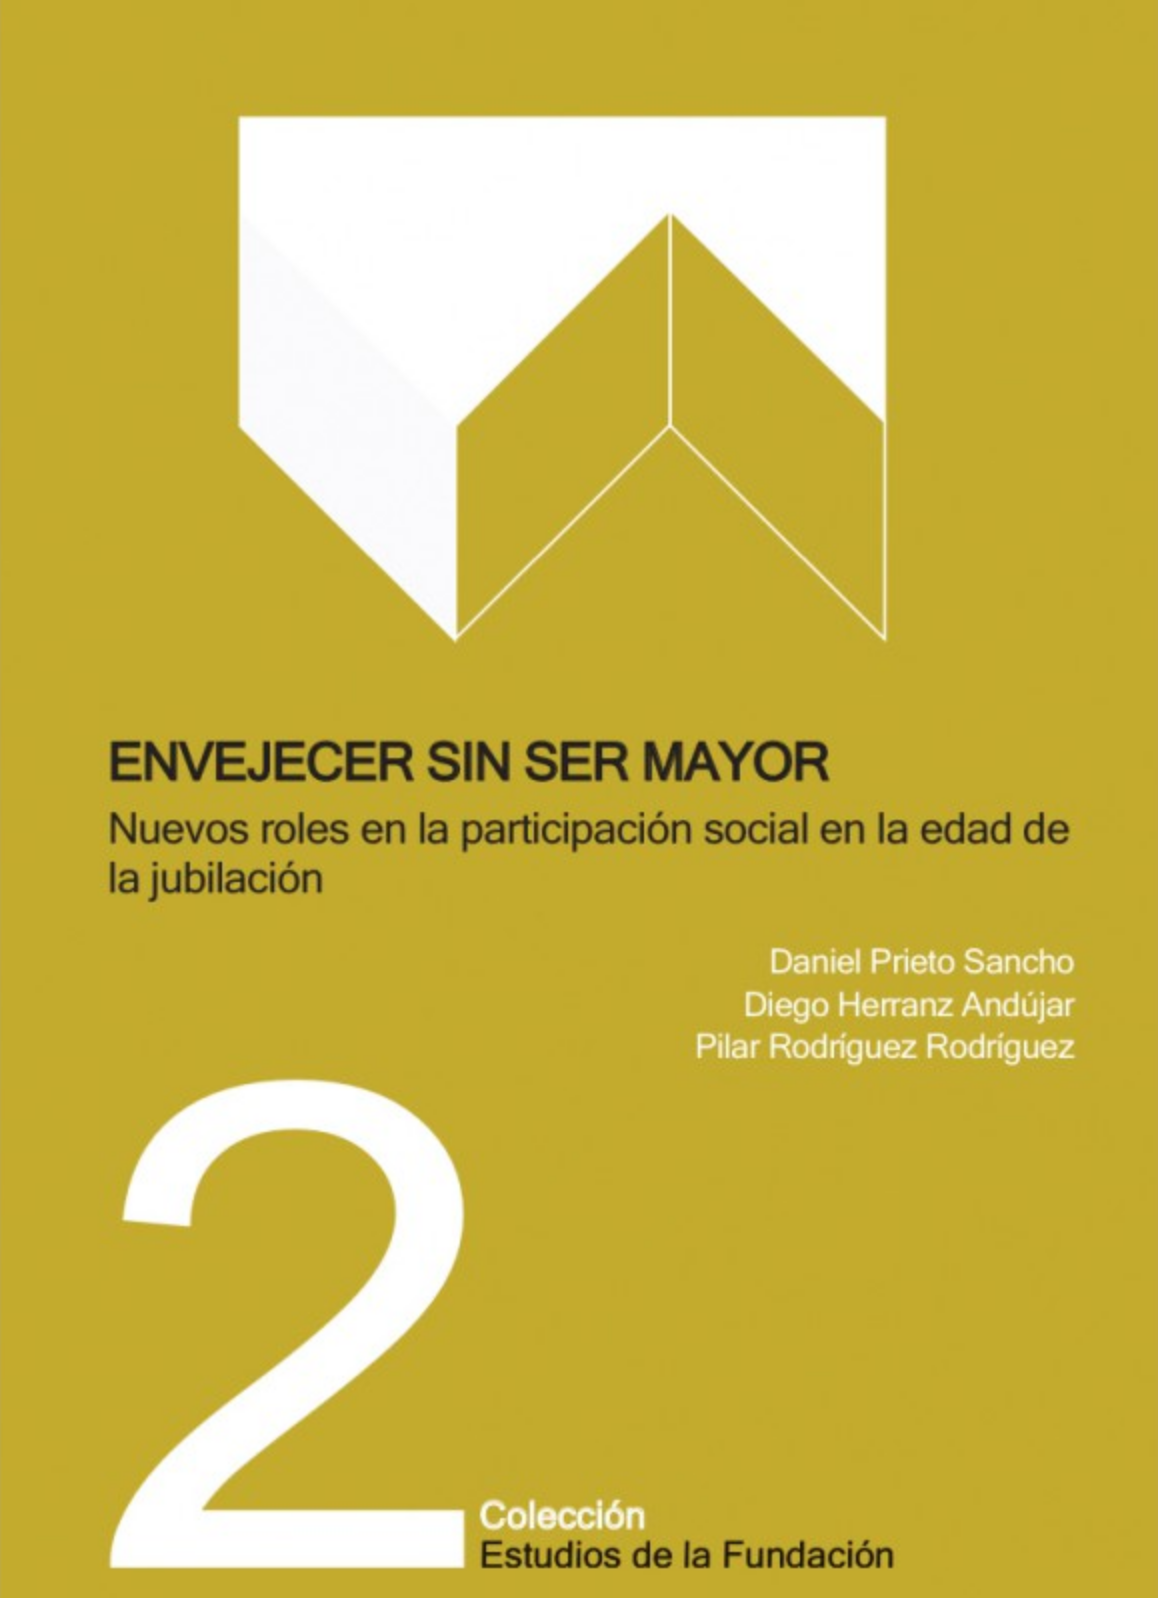 Envejecer sin ser mayor.